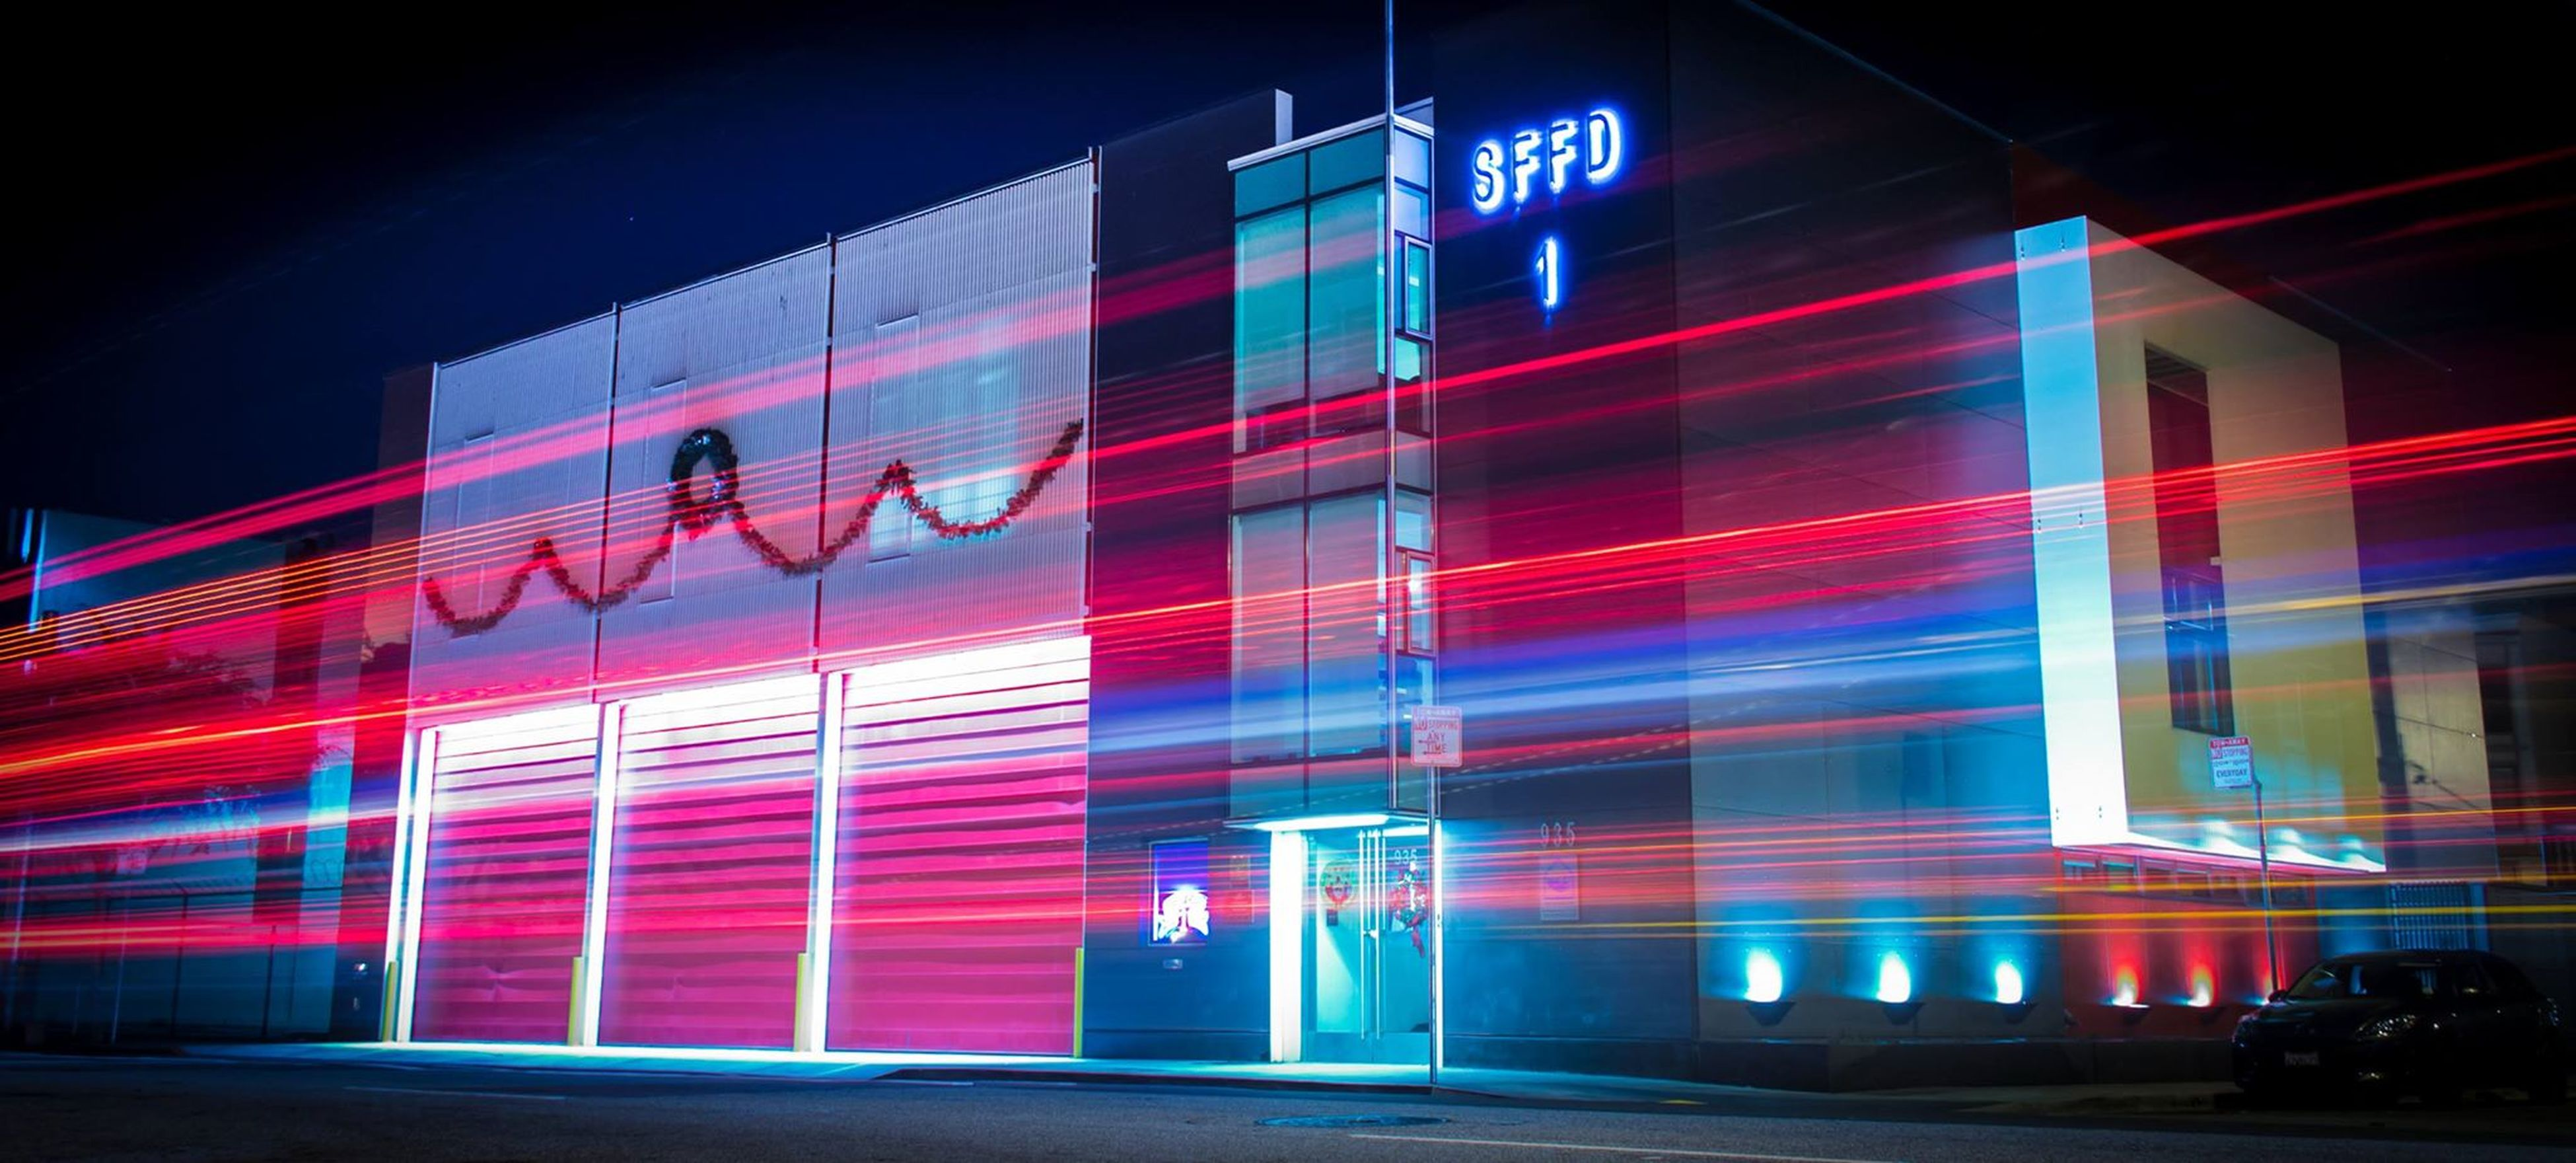 illuminated, text, night, western script, built structure, architecture, multi colored, communication, building exterior, advertisement, city, graffiti, neon, transportation, modern, commercial sign, non-western script, blue, long exposure, sign